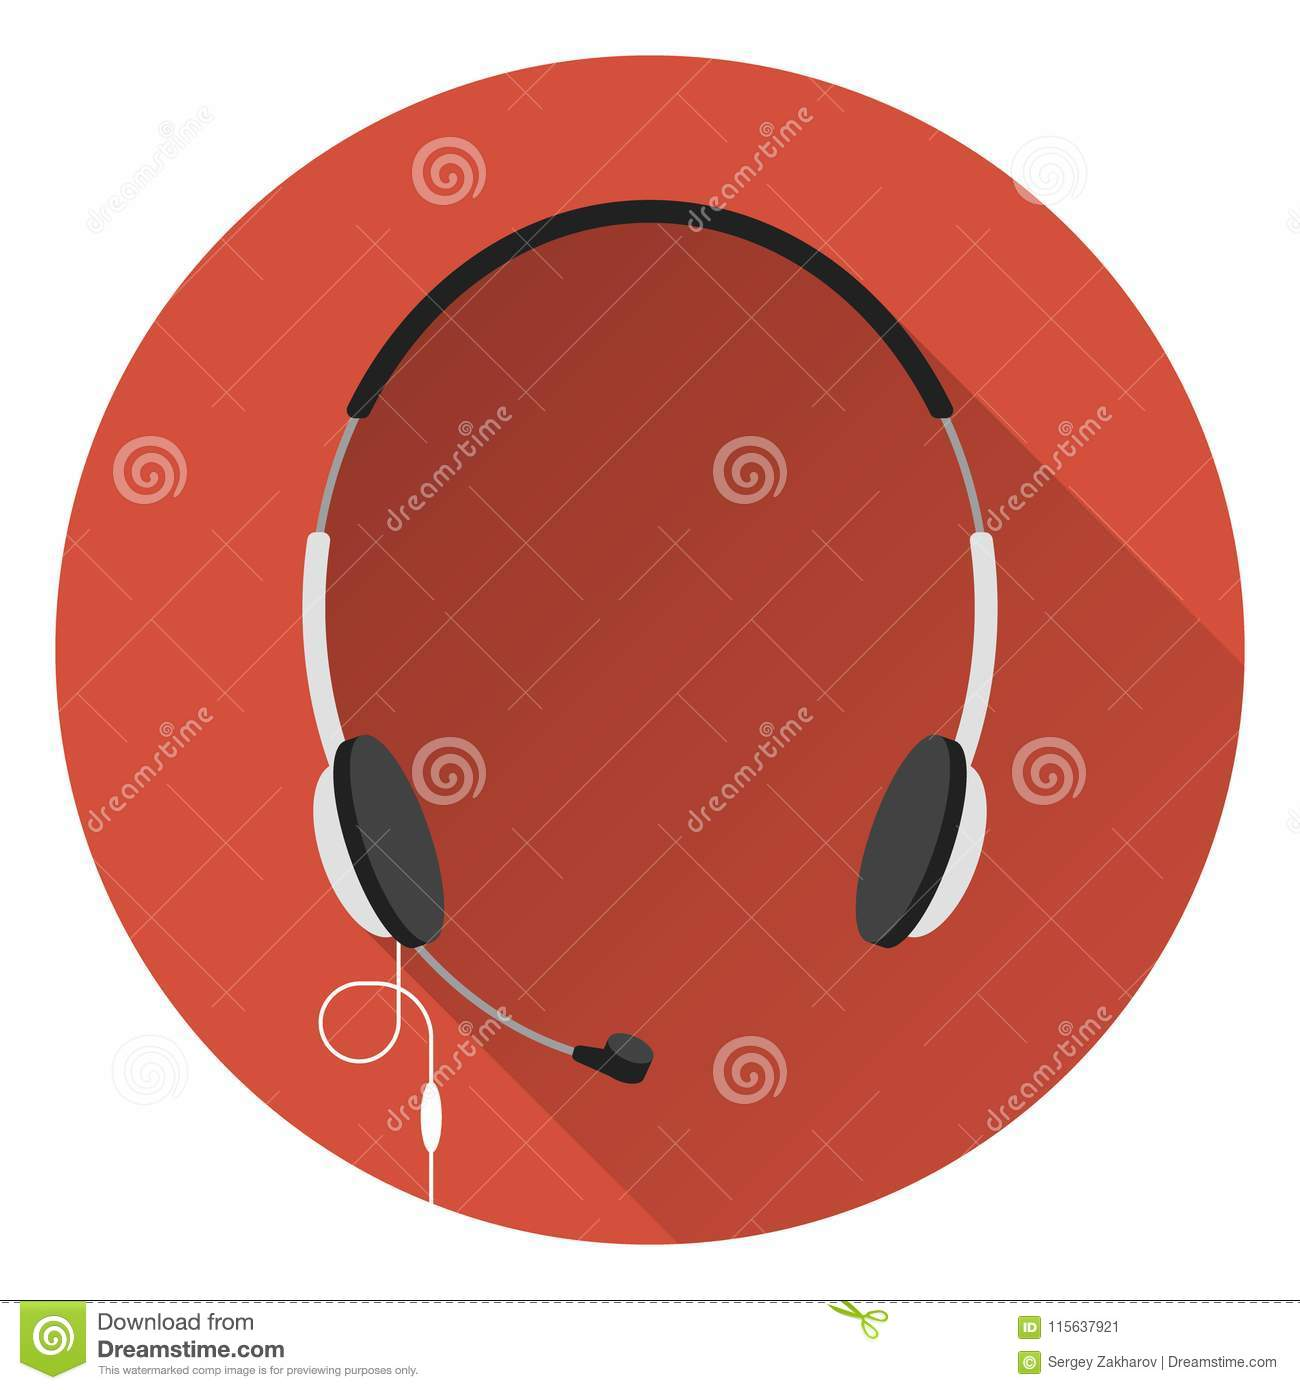 Computer headphones with microphone, orange background, flat style, icon.